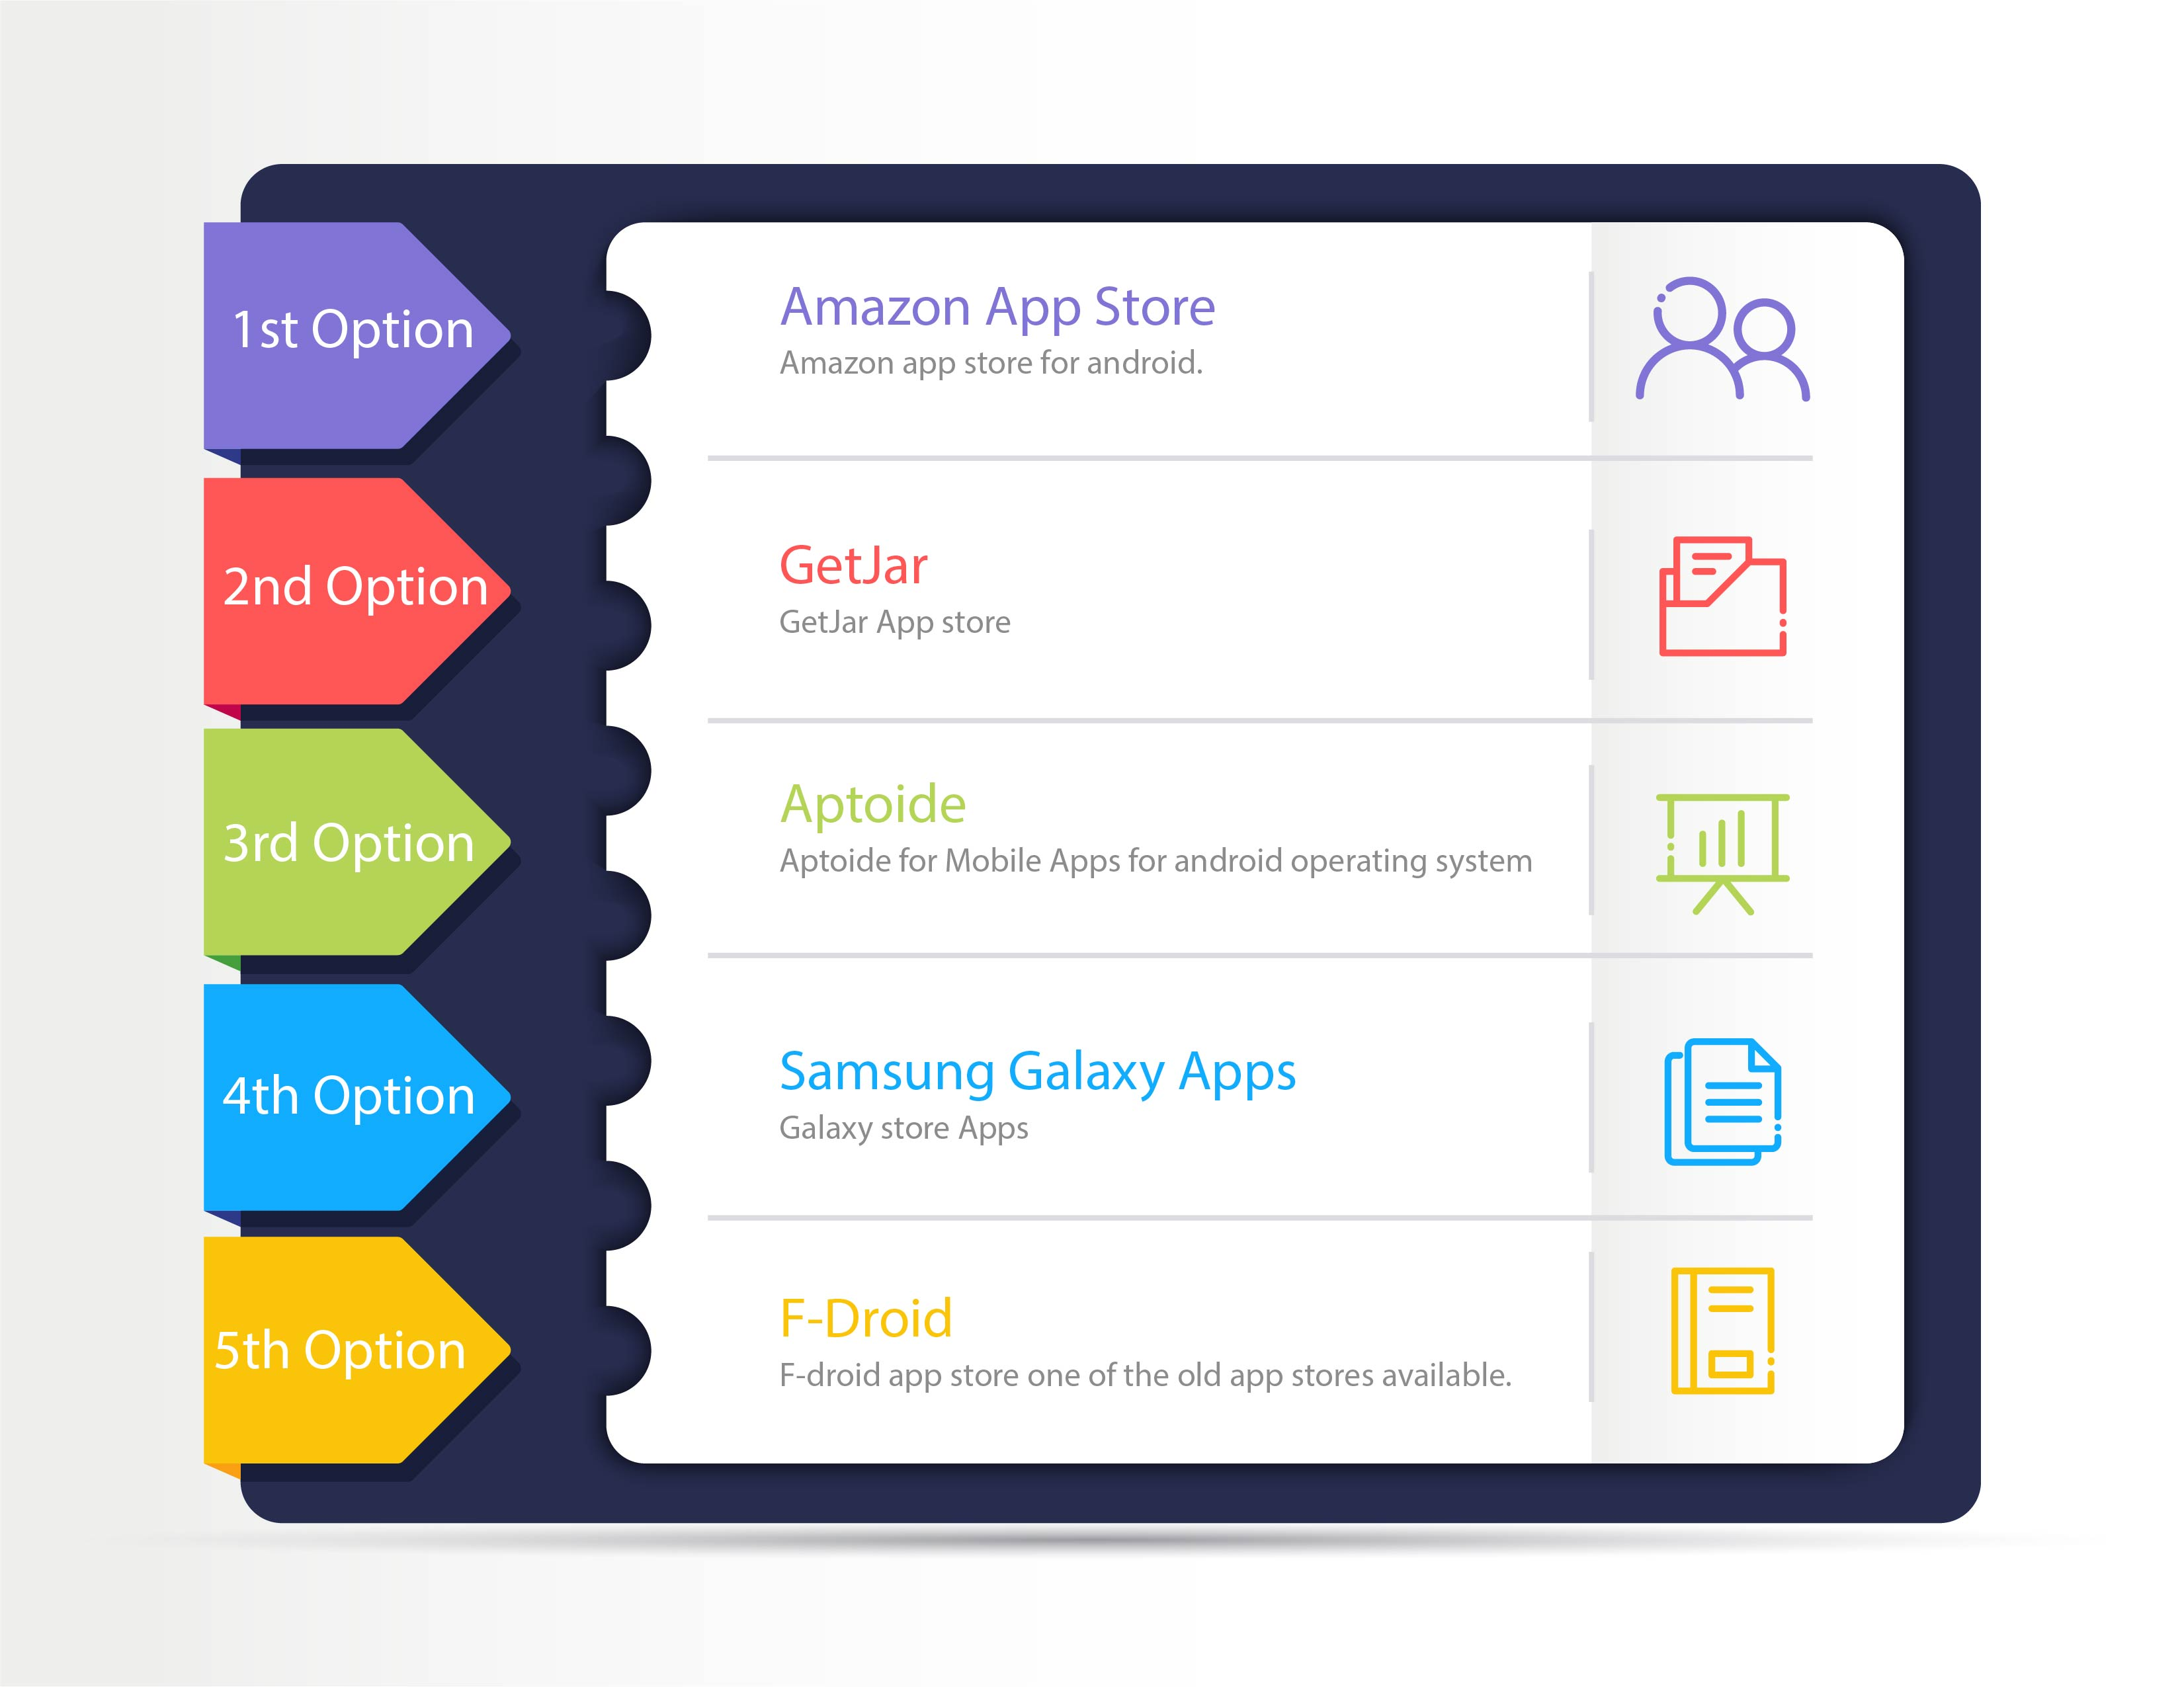 Android App Store options